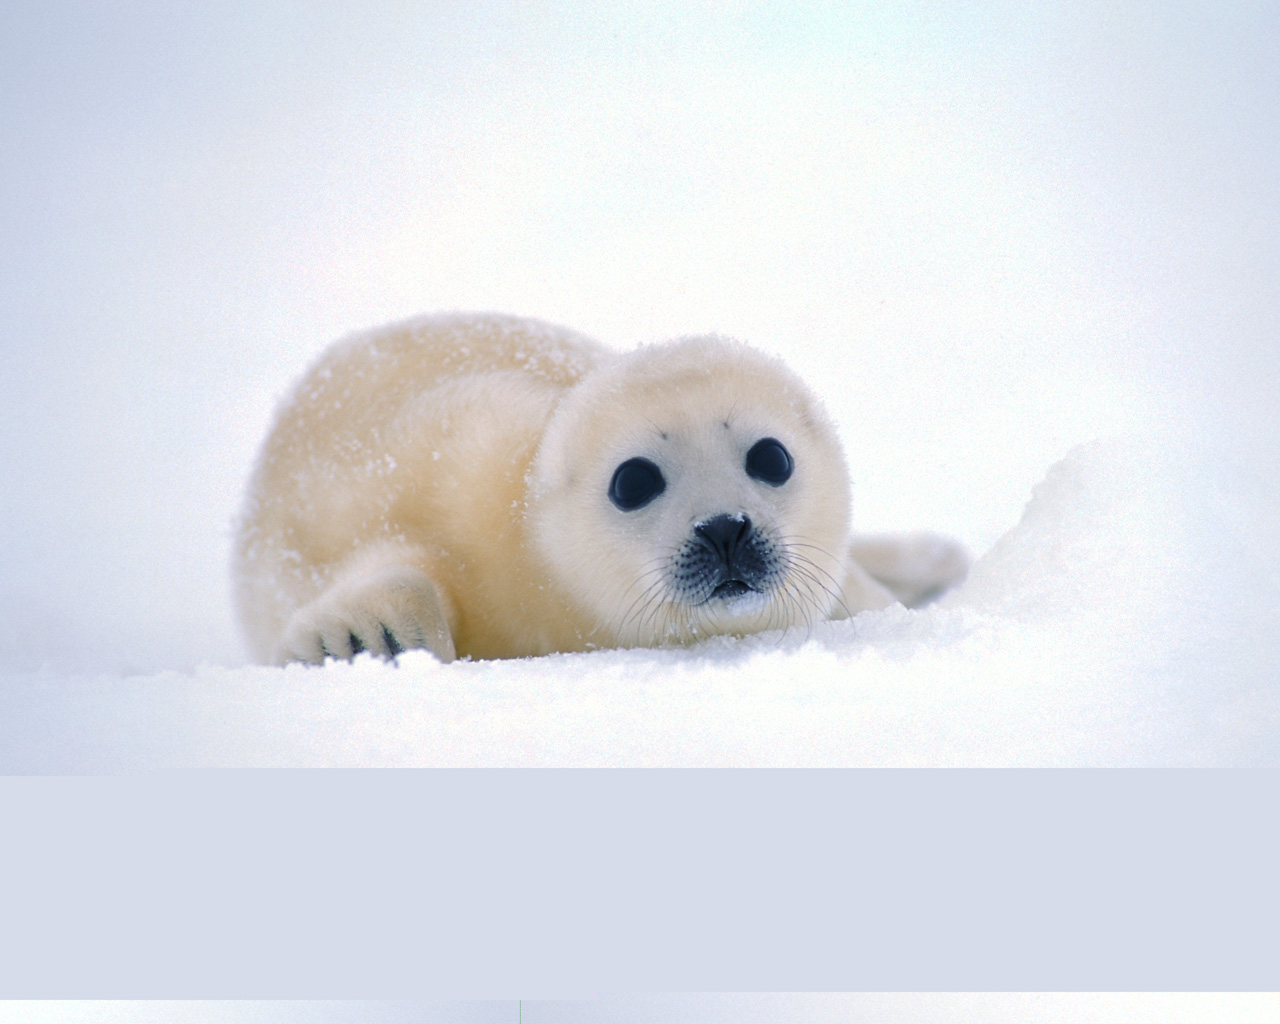 Harp seal pup wallpaper size. Kingdom: Animalia Phylum: Chordata